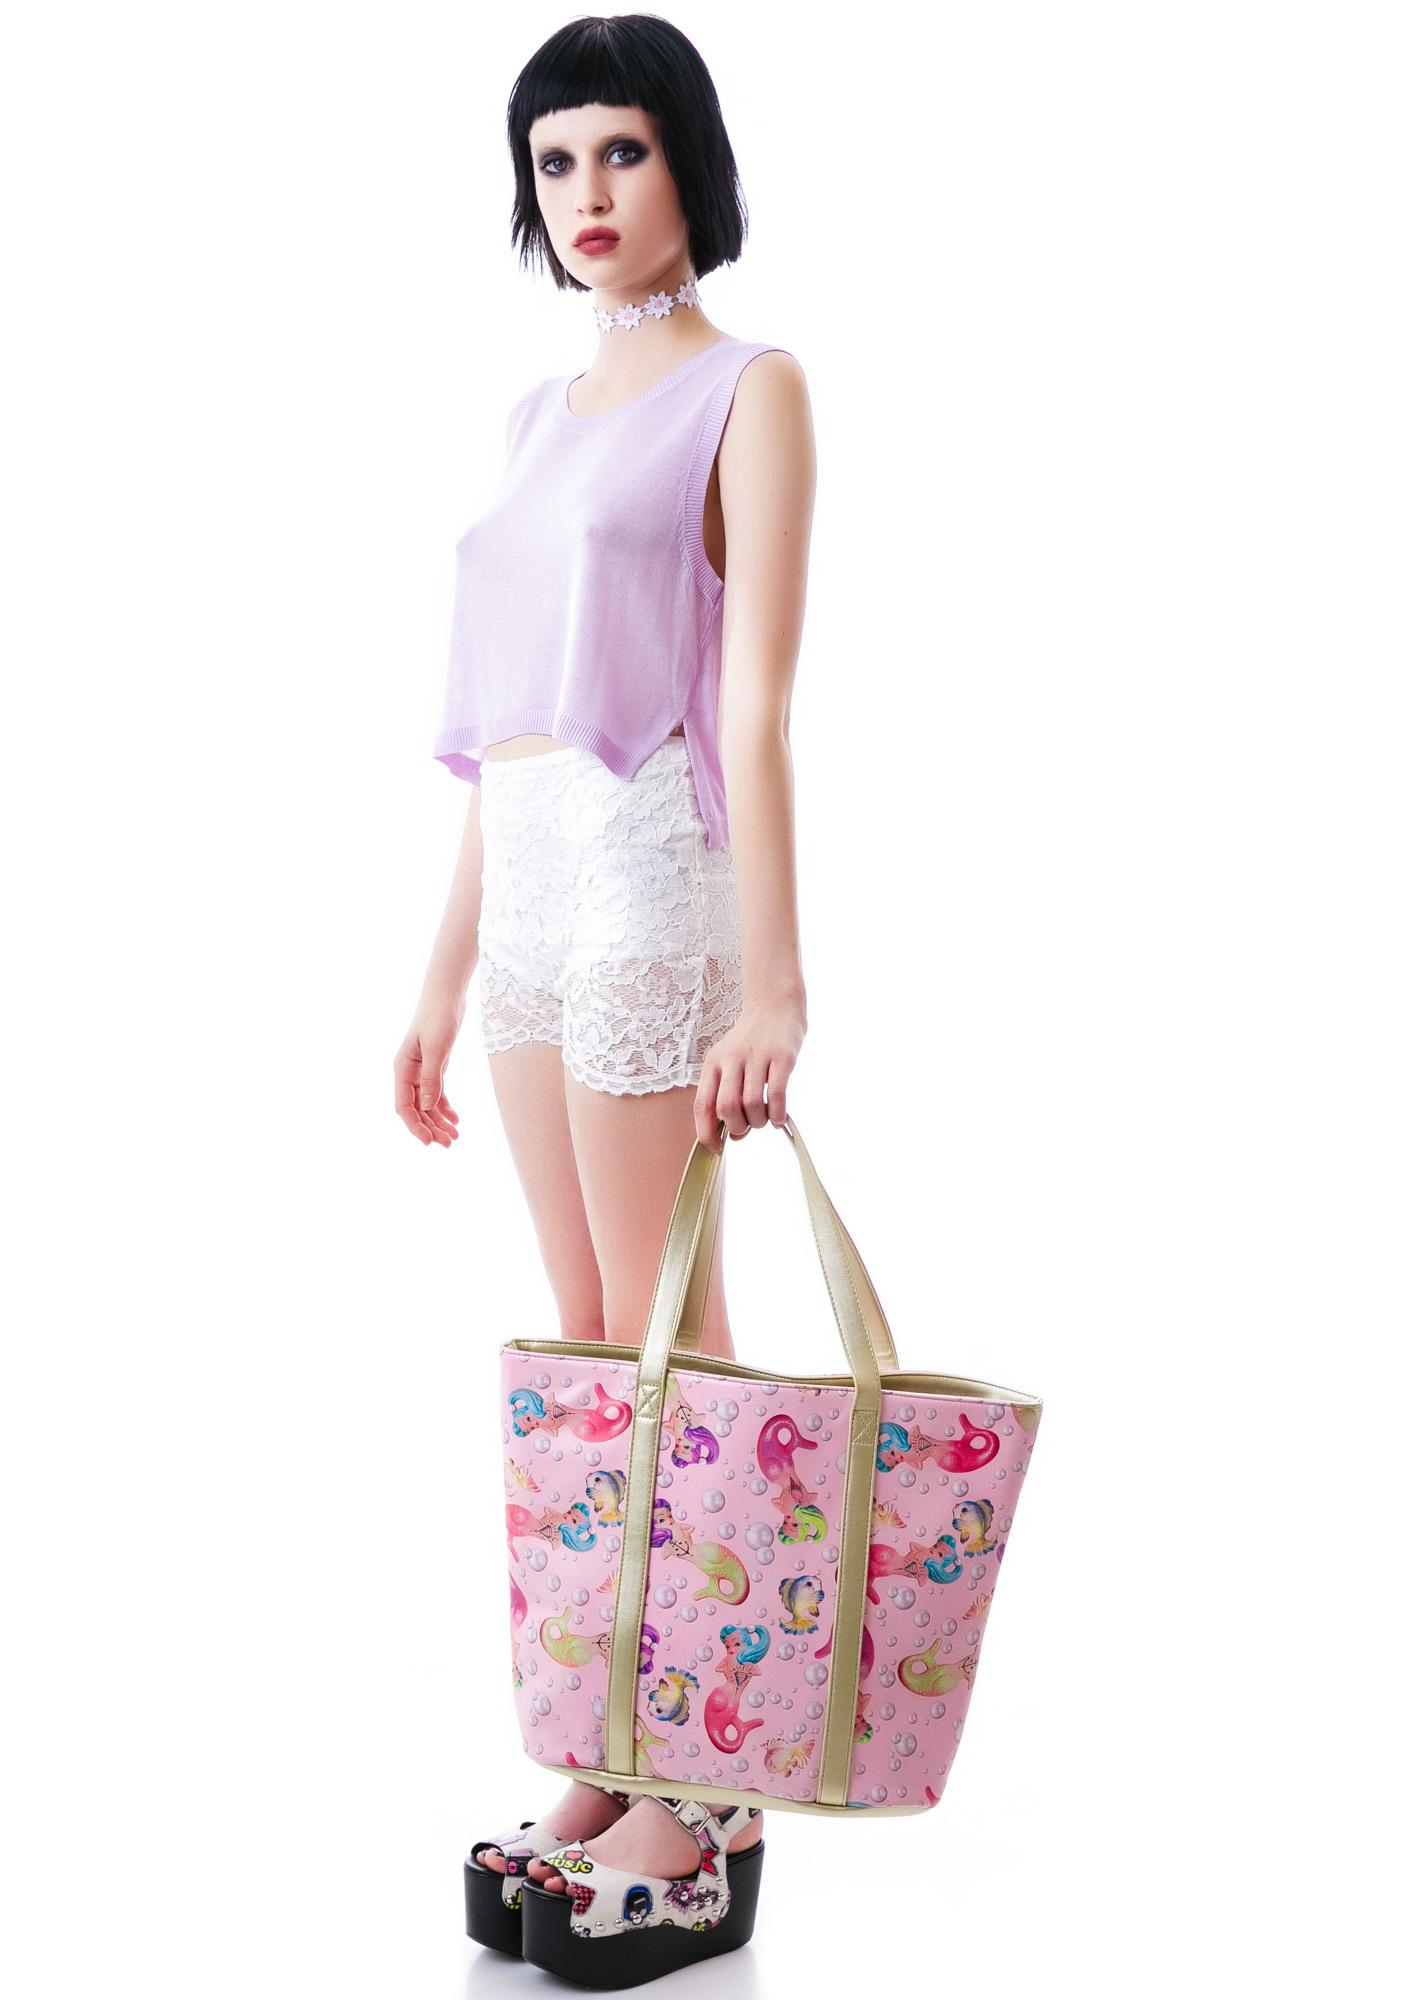 Iron Fist Lollipop Lorelei Tote Bag